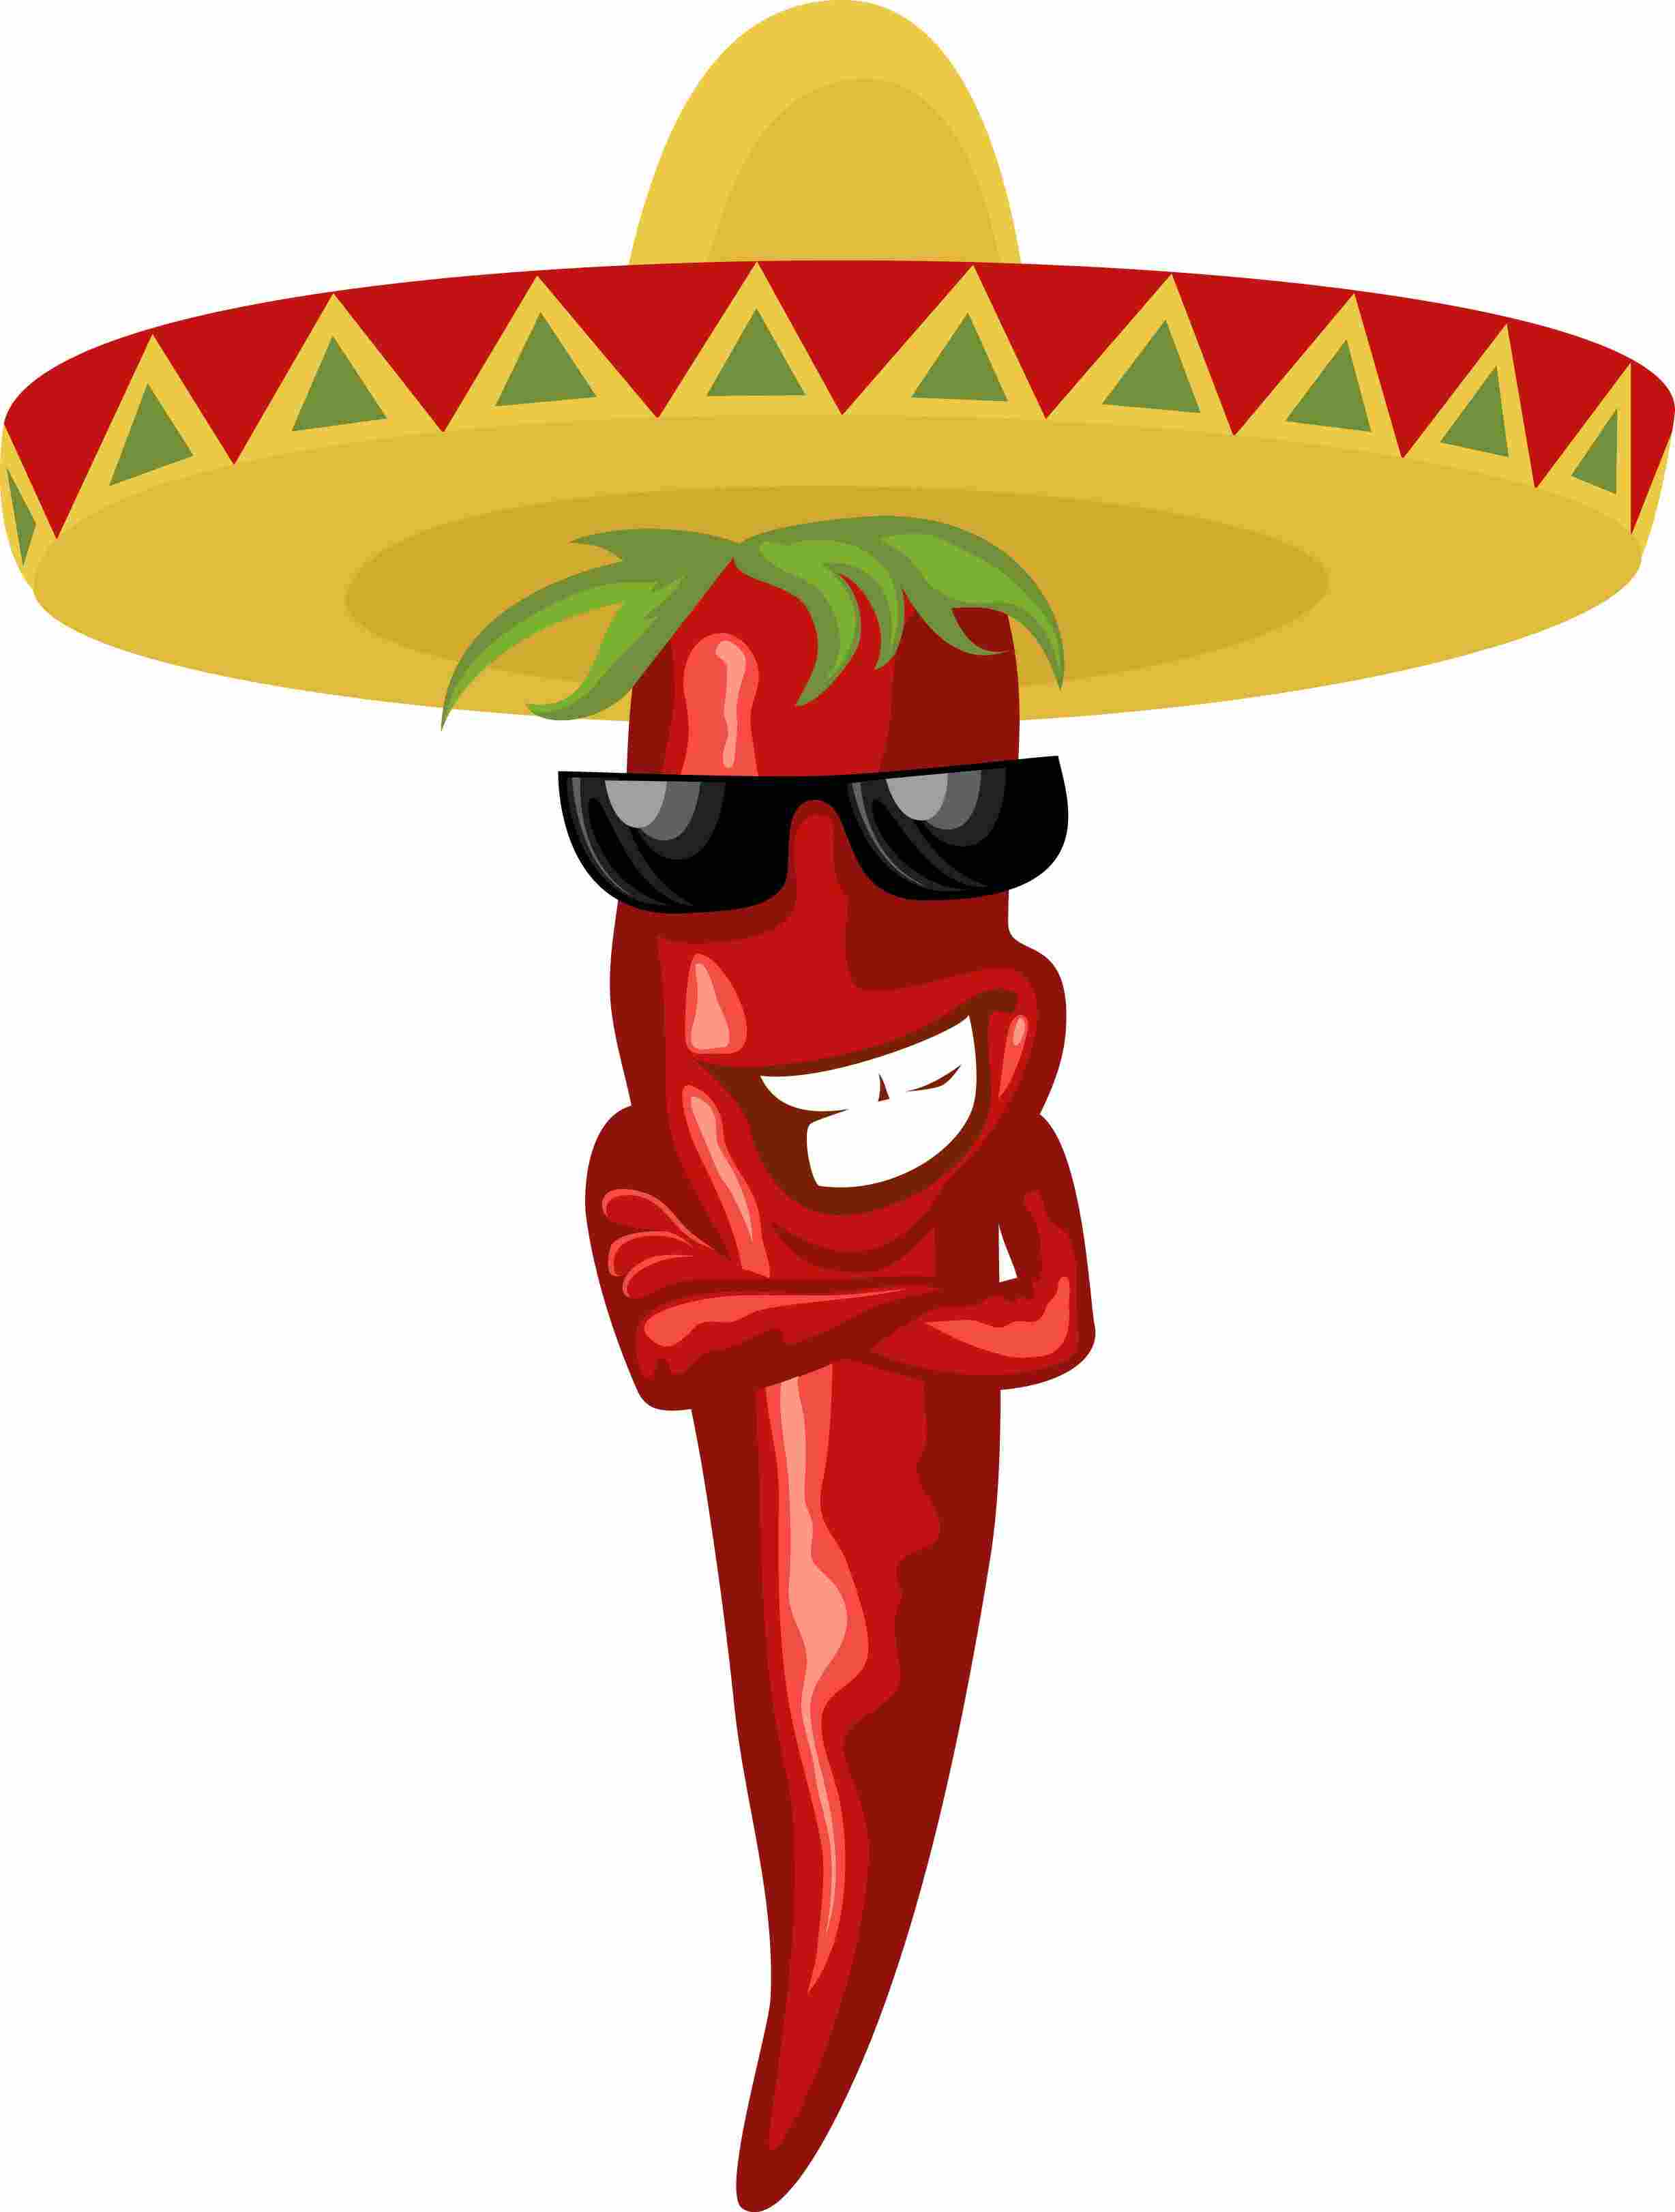 Jalapeno clipart mild chili. Pepper at getdrawings com